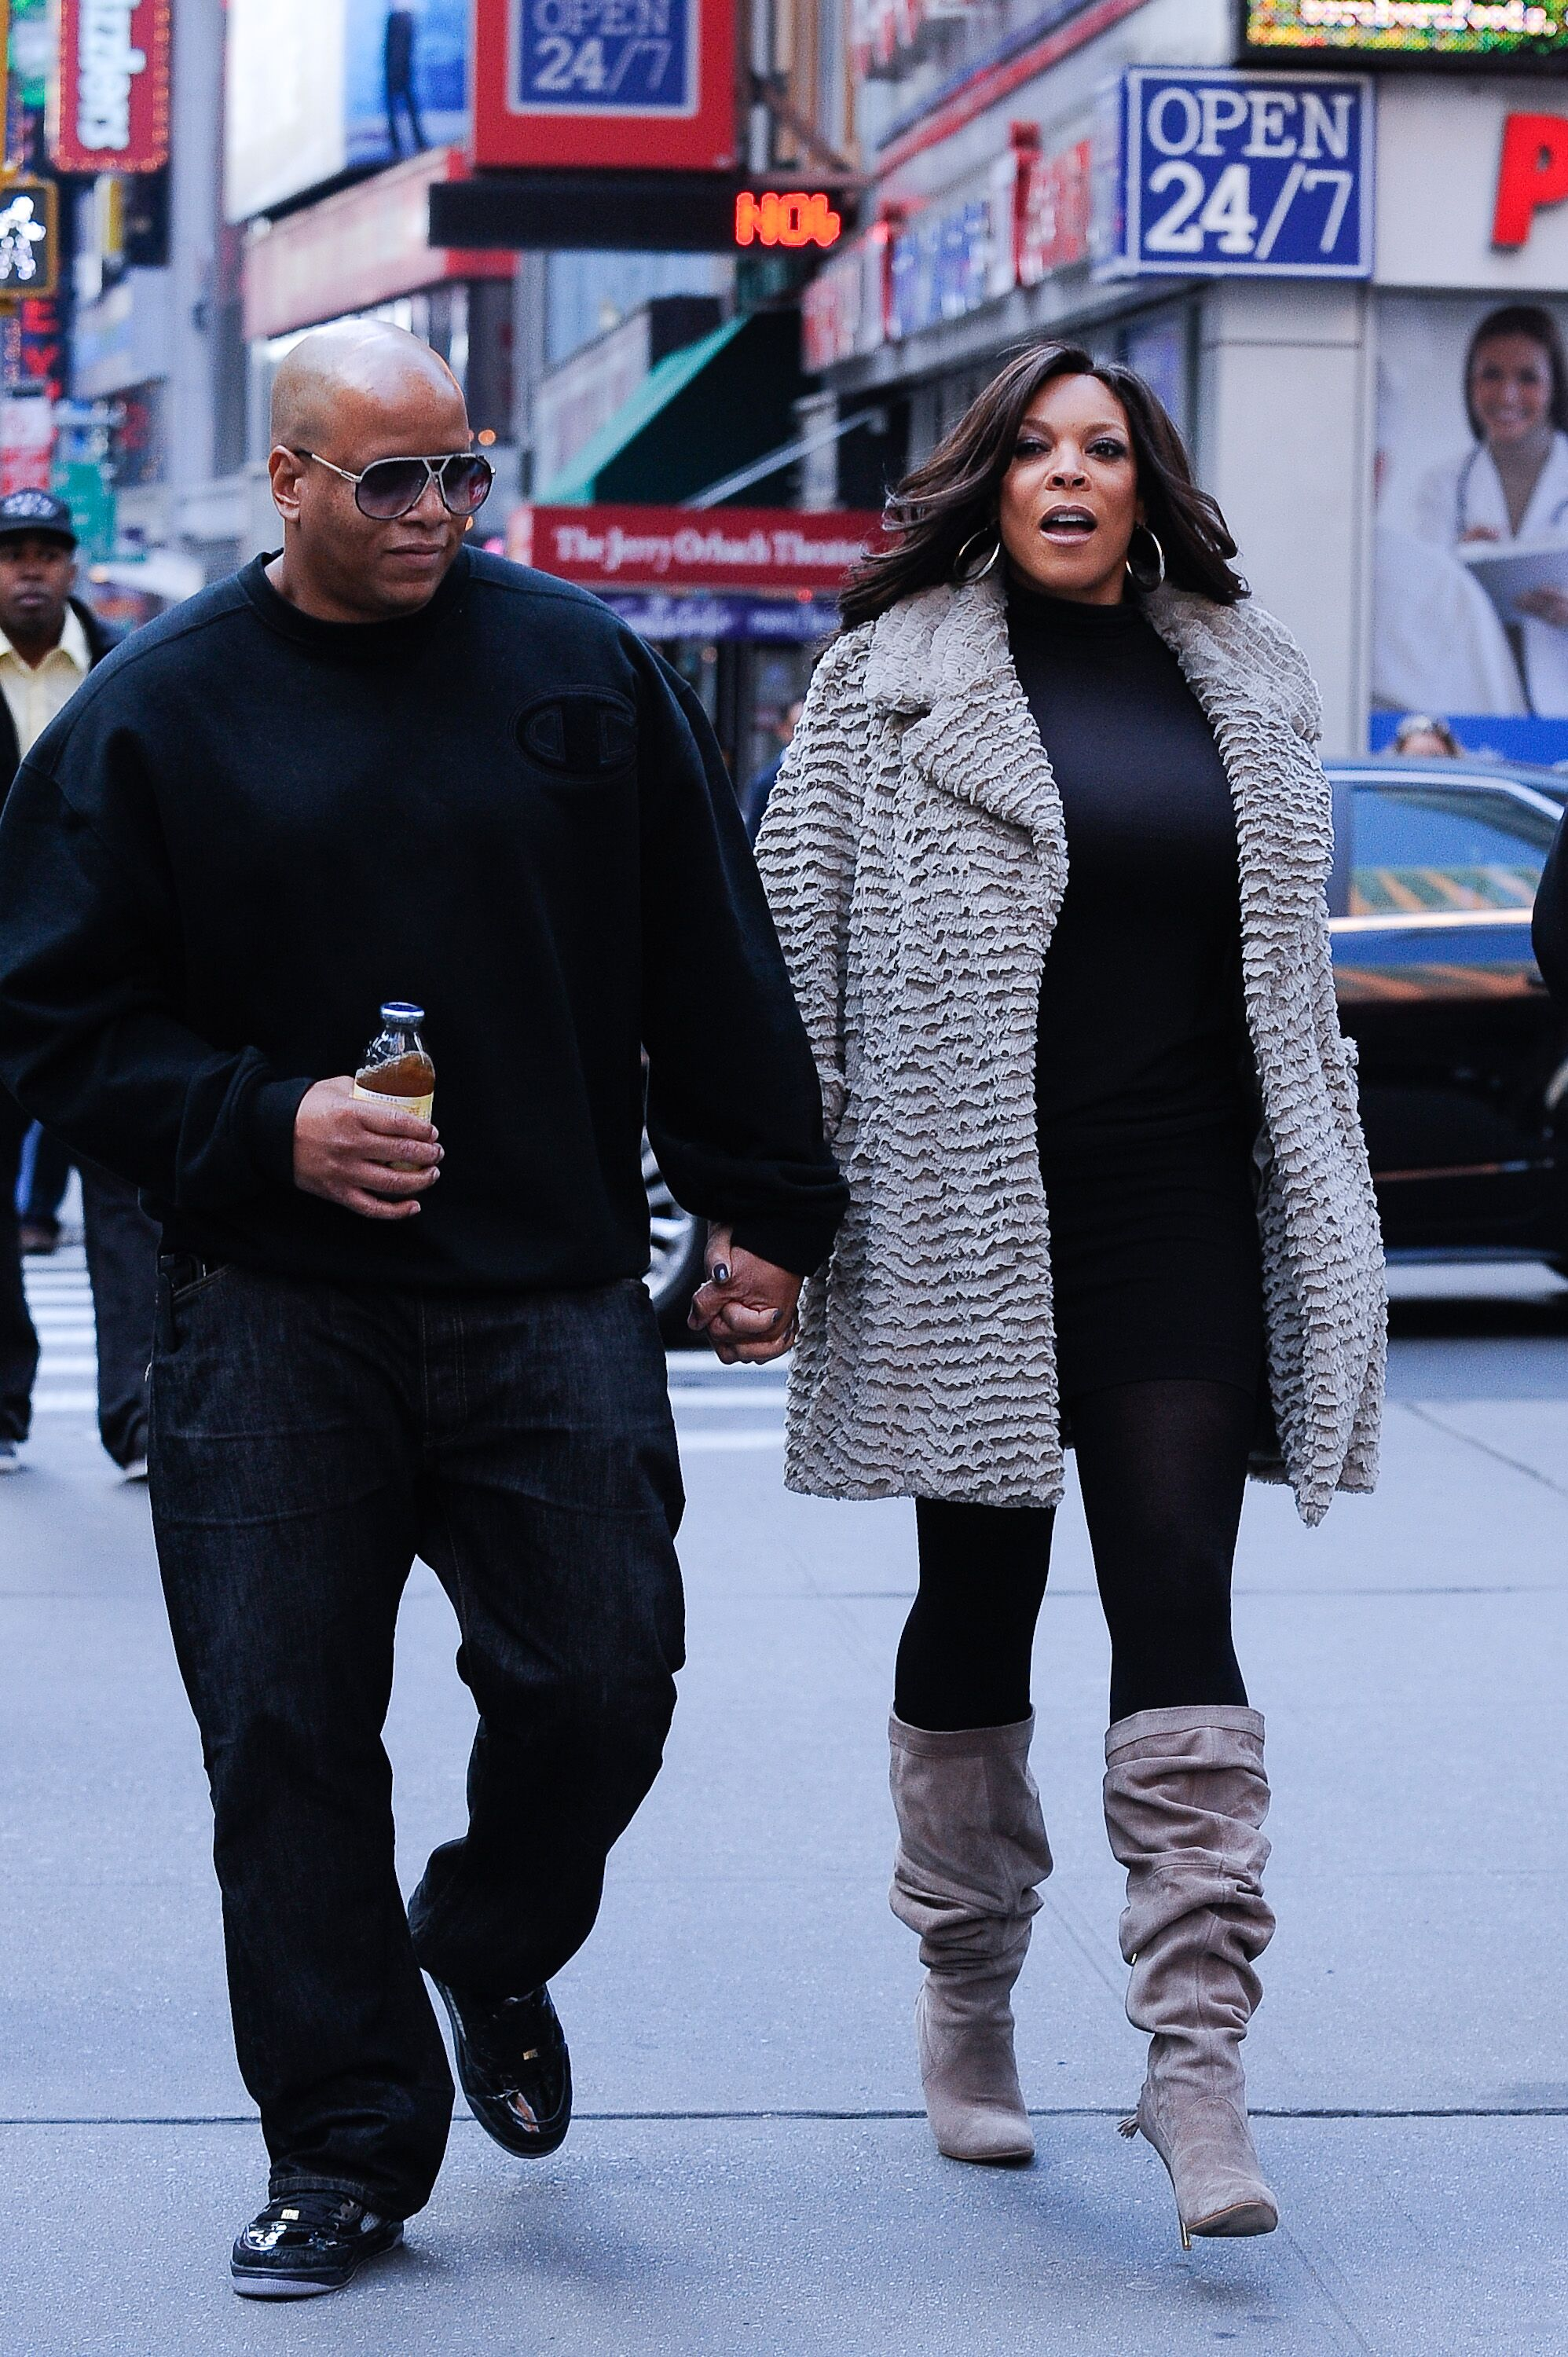 Wendy Williams and estranged husband Kevin Hunter in New York in 2010/ Source: Getty Images